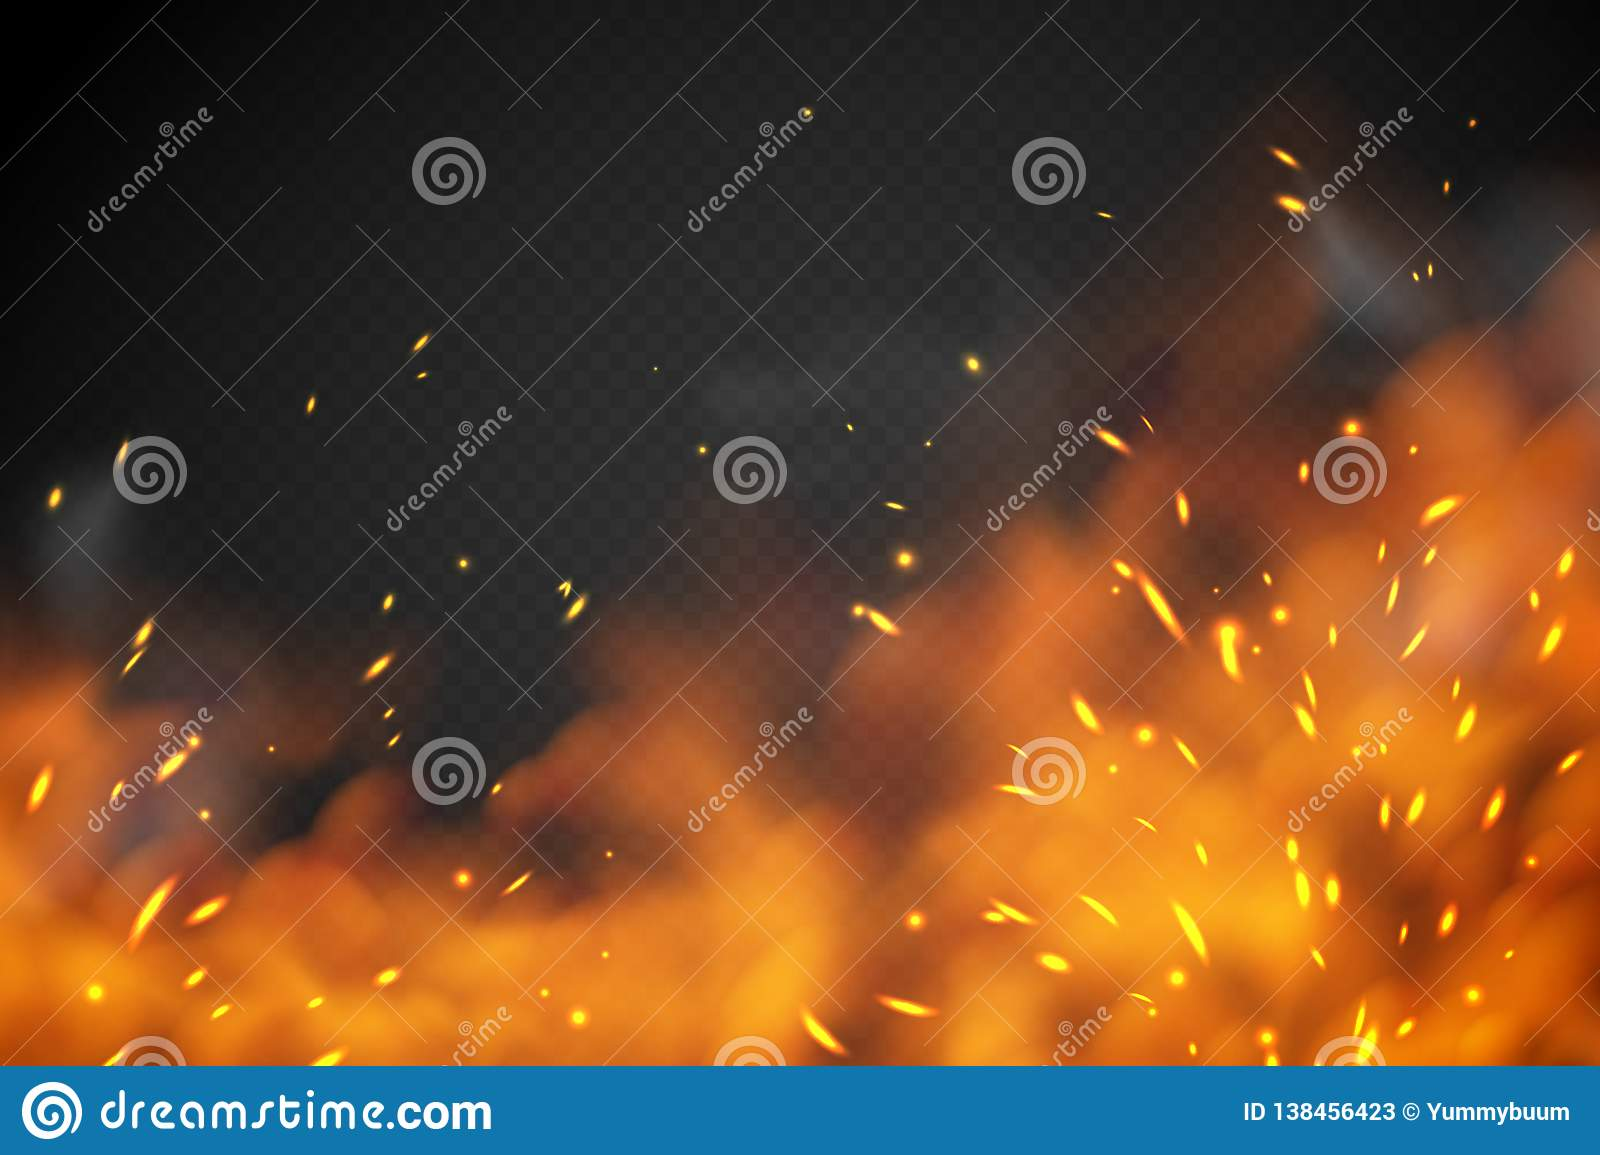 Smoke fire effect. Burning embers red hot metal ignite sparks fiery heat transparent smog texture isolated on black